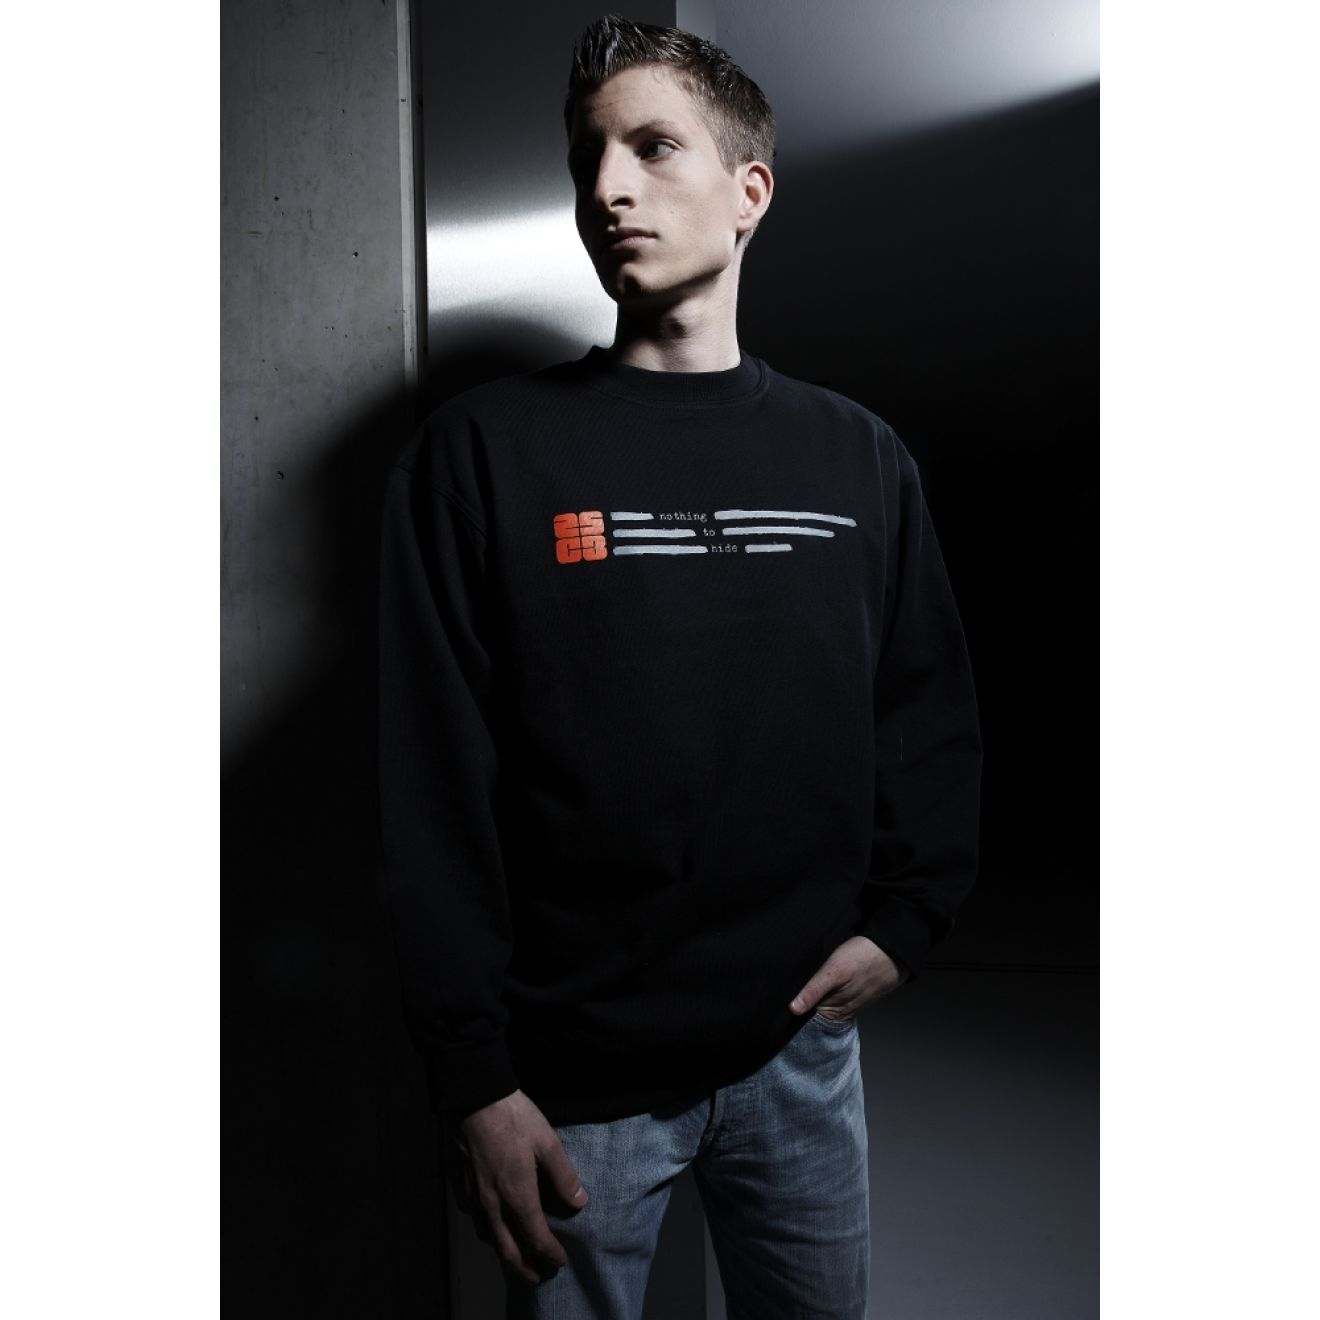 Sweatshirt: 25c3 - Nothing to Hide